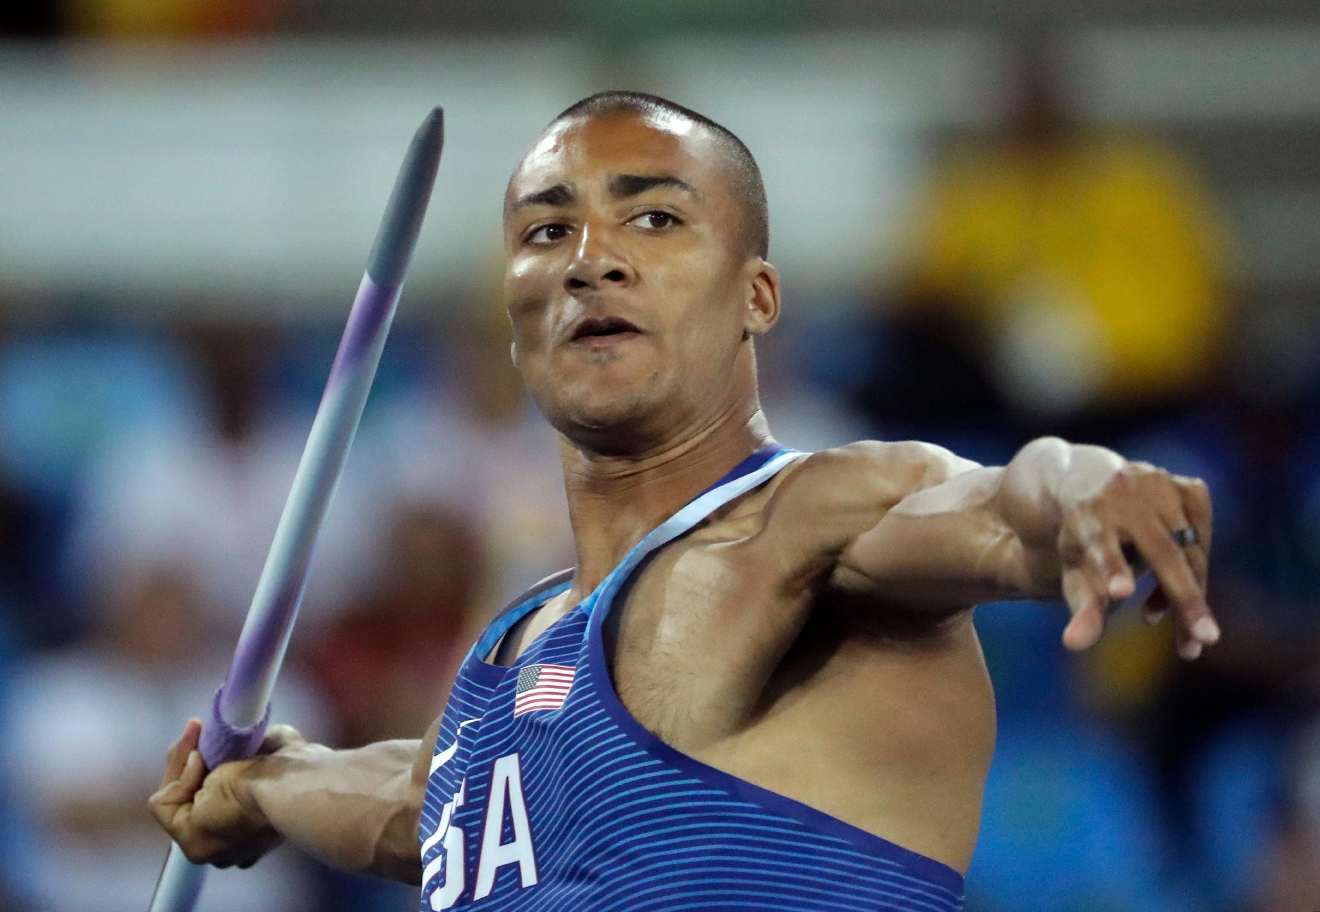 United States' Ashton Eaton makes an attempt in the javelin throw of the decathlon during the athletics competitions of the 2016 Summer Olympics at the Olympic stadium in Rio de Janeiro, Brazil, Thursday, Aug. 18, 2016. (AP Photo/Matt Dunham)